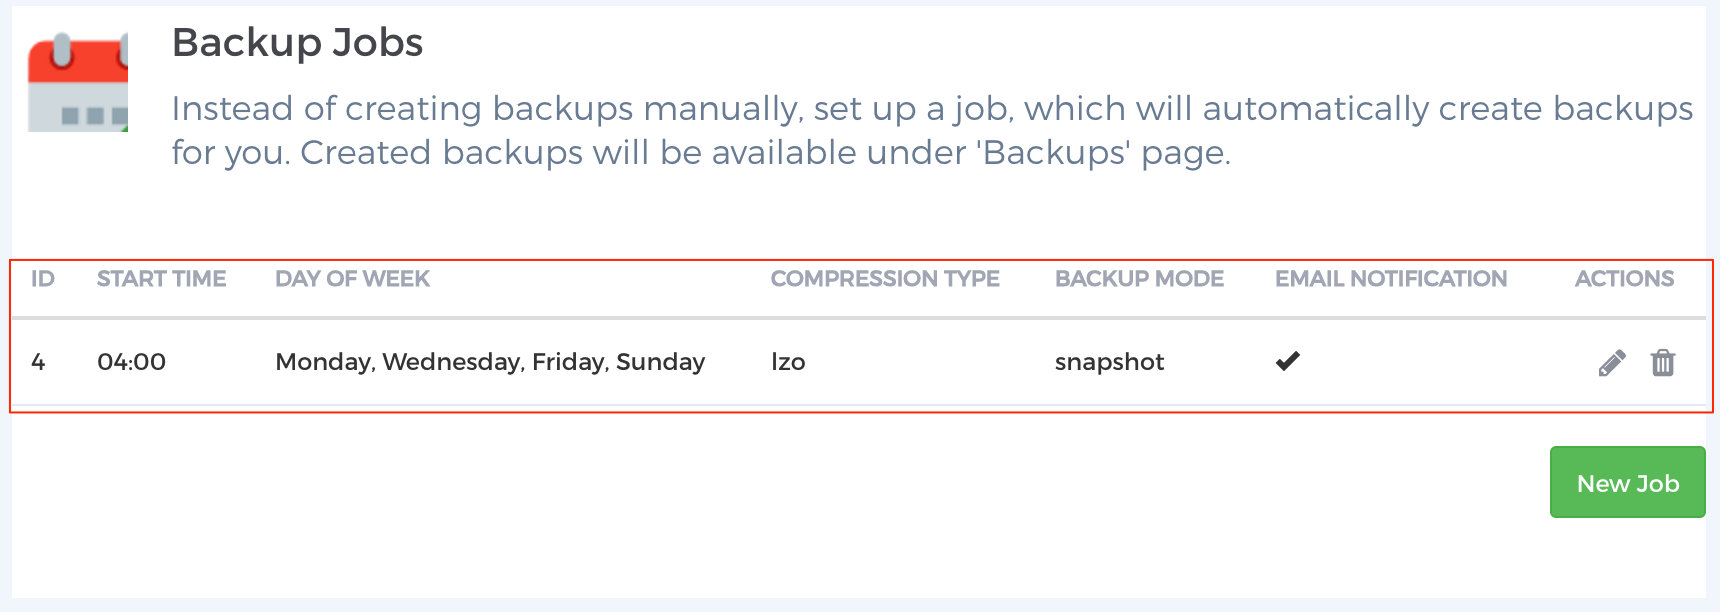 Step 6 - Scheduled Backups